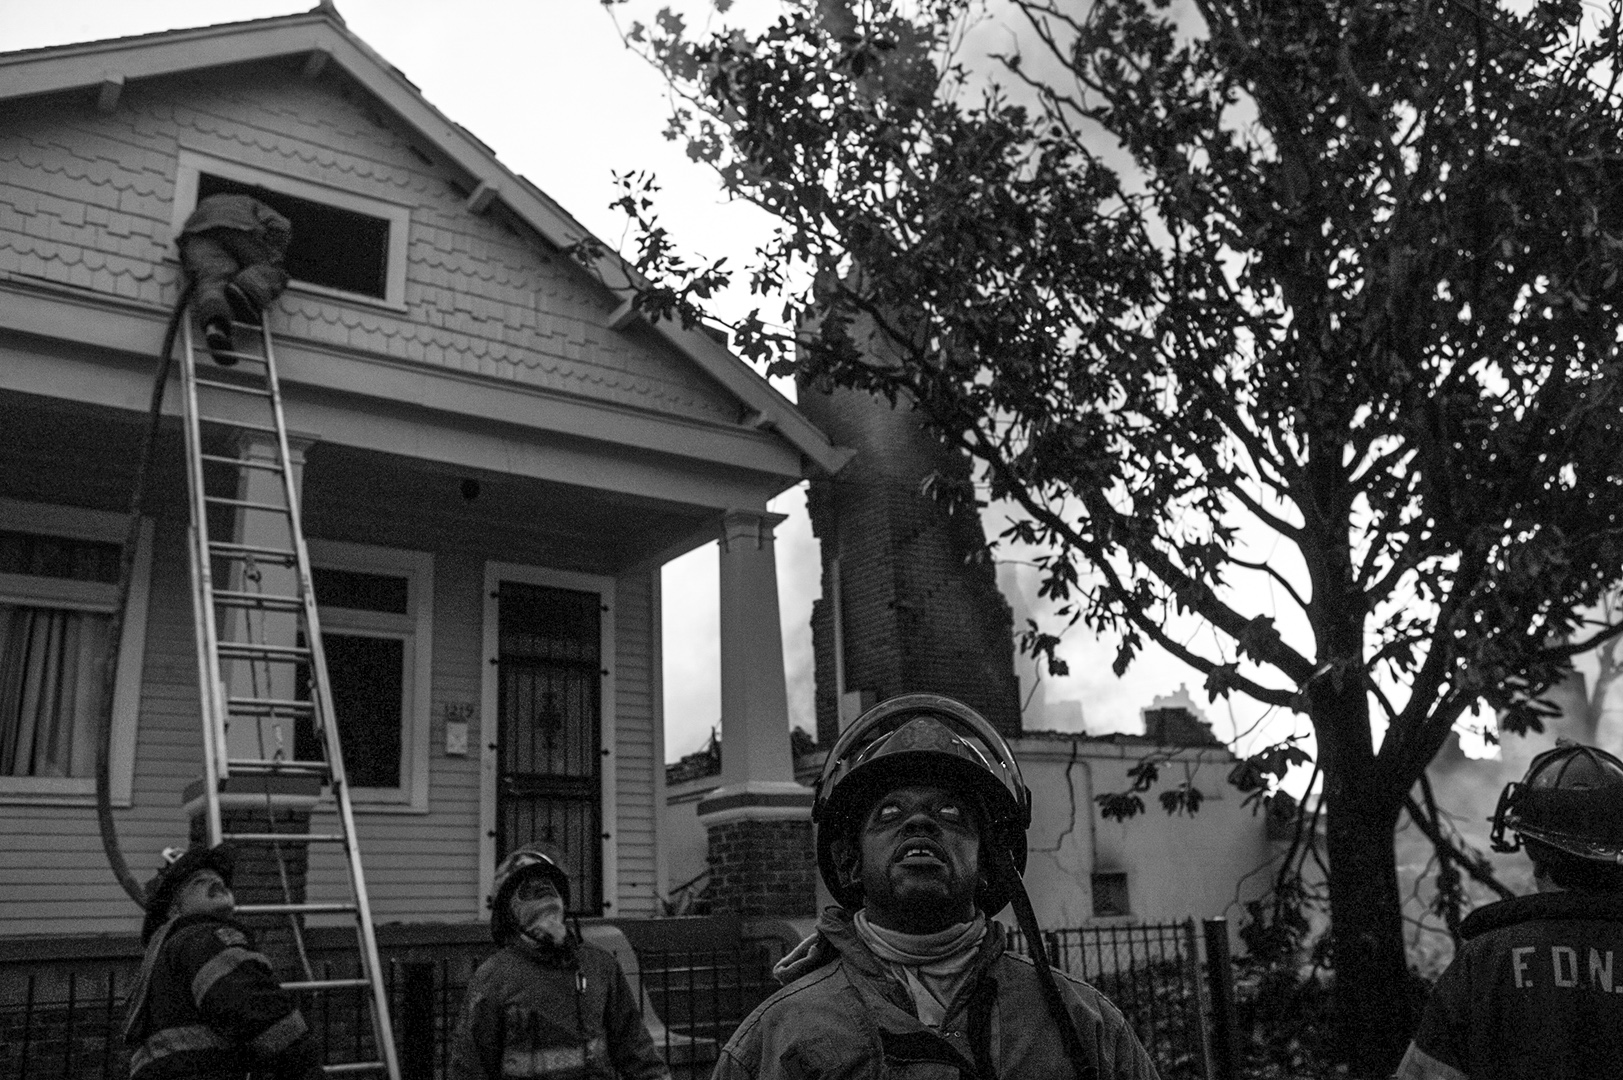 Firefighters at the scene of a house fire.